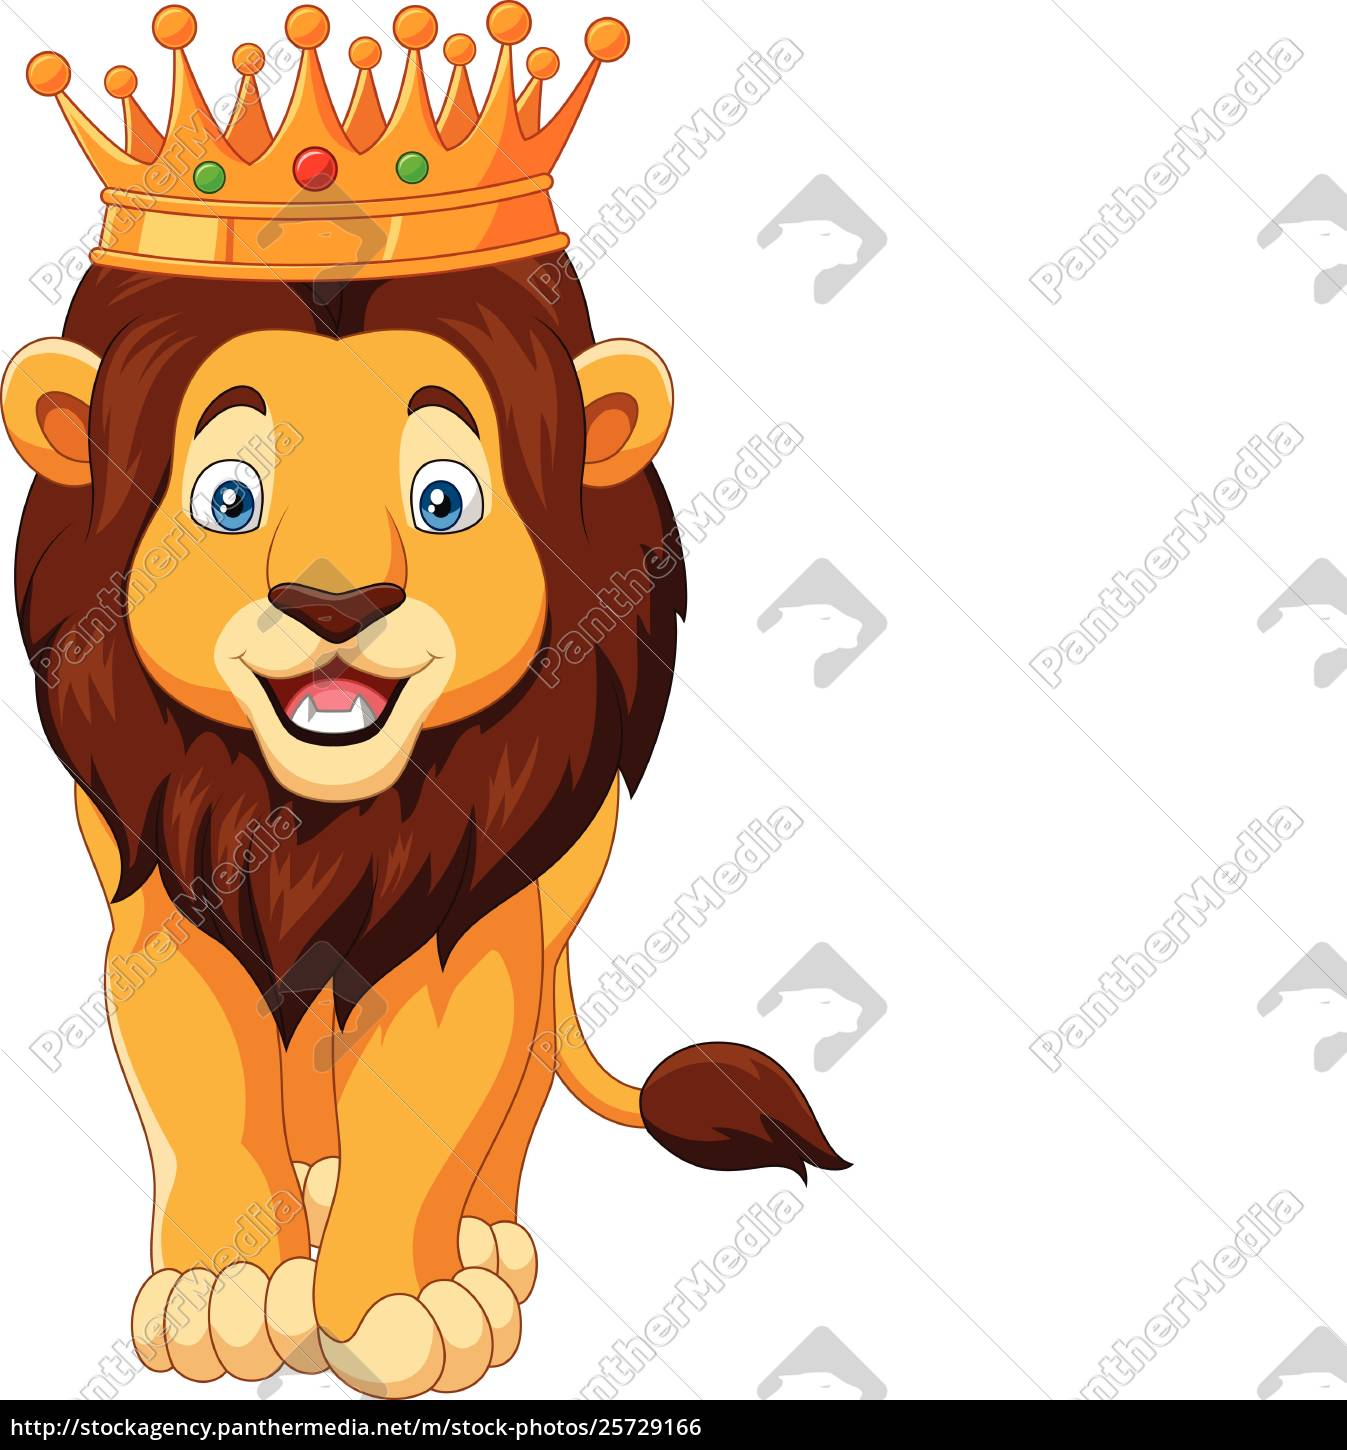 Cartoon Lion Wearing A Crown Stock Image 25729166 Panthermedia Stock Agency Check out our lion crown clipart selection for the very best in unique or custom, handmade pieces from our shops. https stockagency panthermedia net m stock photos 25729166 cartoon lion wearing a crown